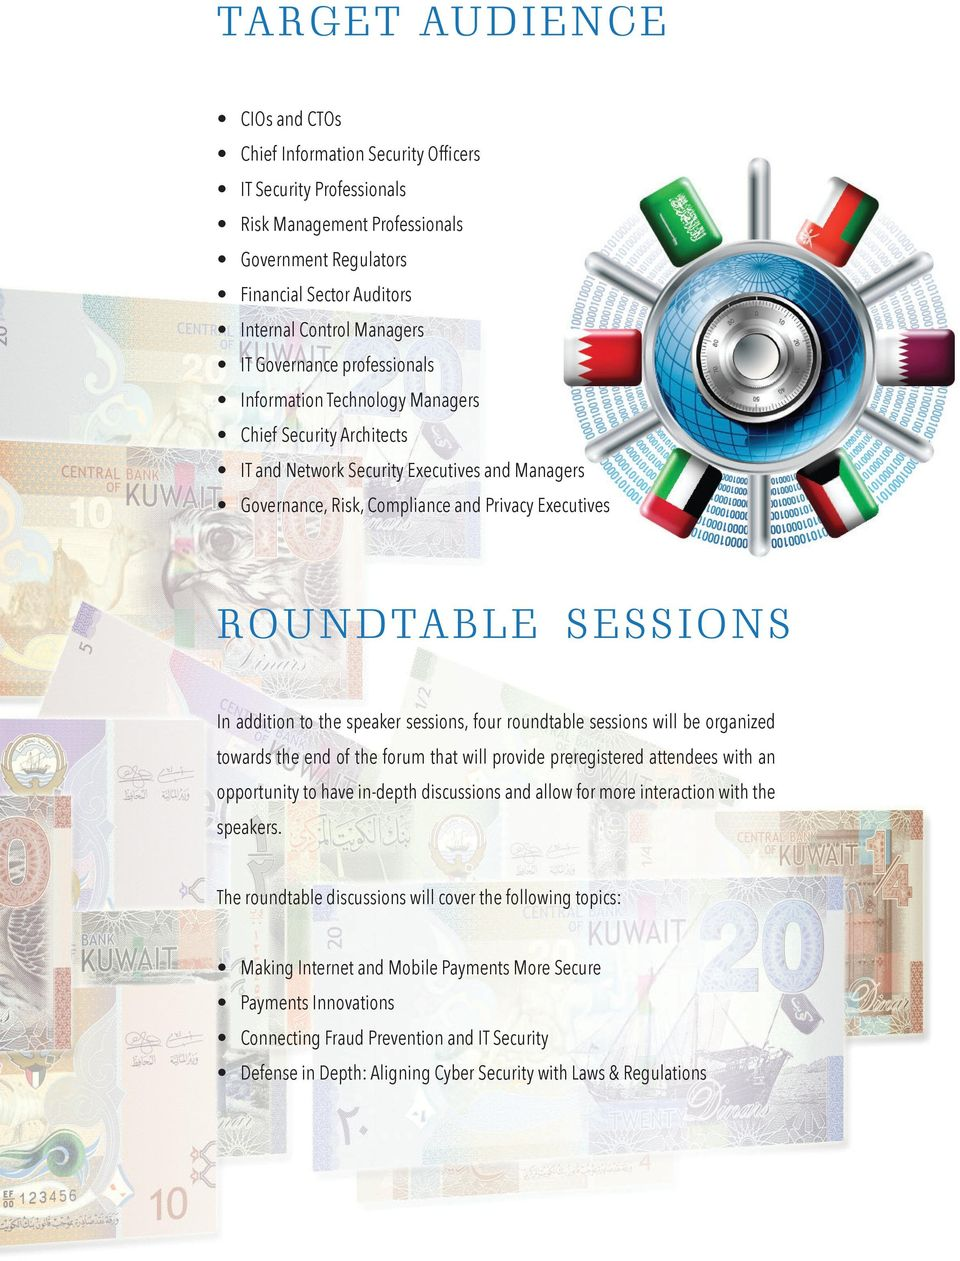 SESSIONS In addition to the speaker sessions, four roundtable sessions will be organized towards the end of the forum that will provide preregistered attendees with an opportunity to have in-depth